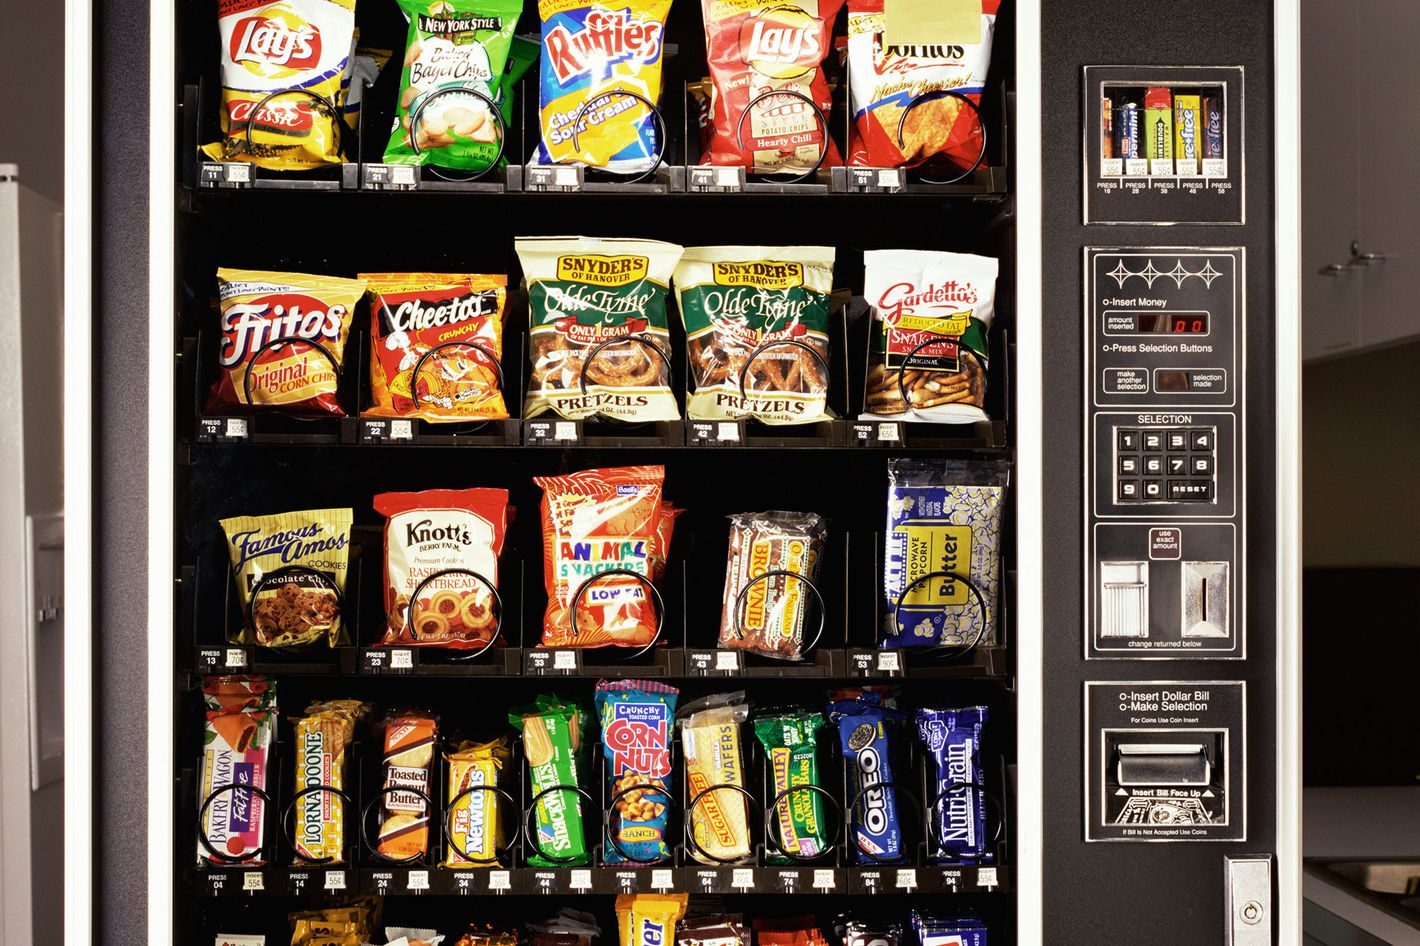 Image result for vending machine images